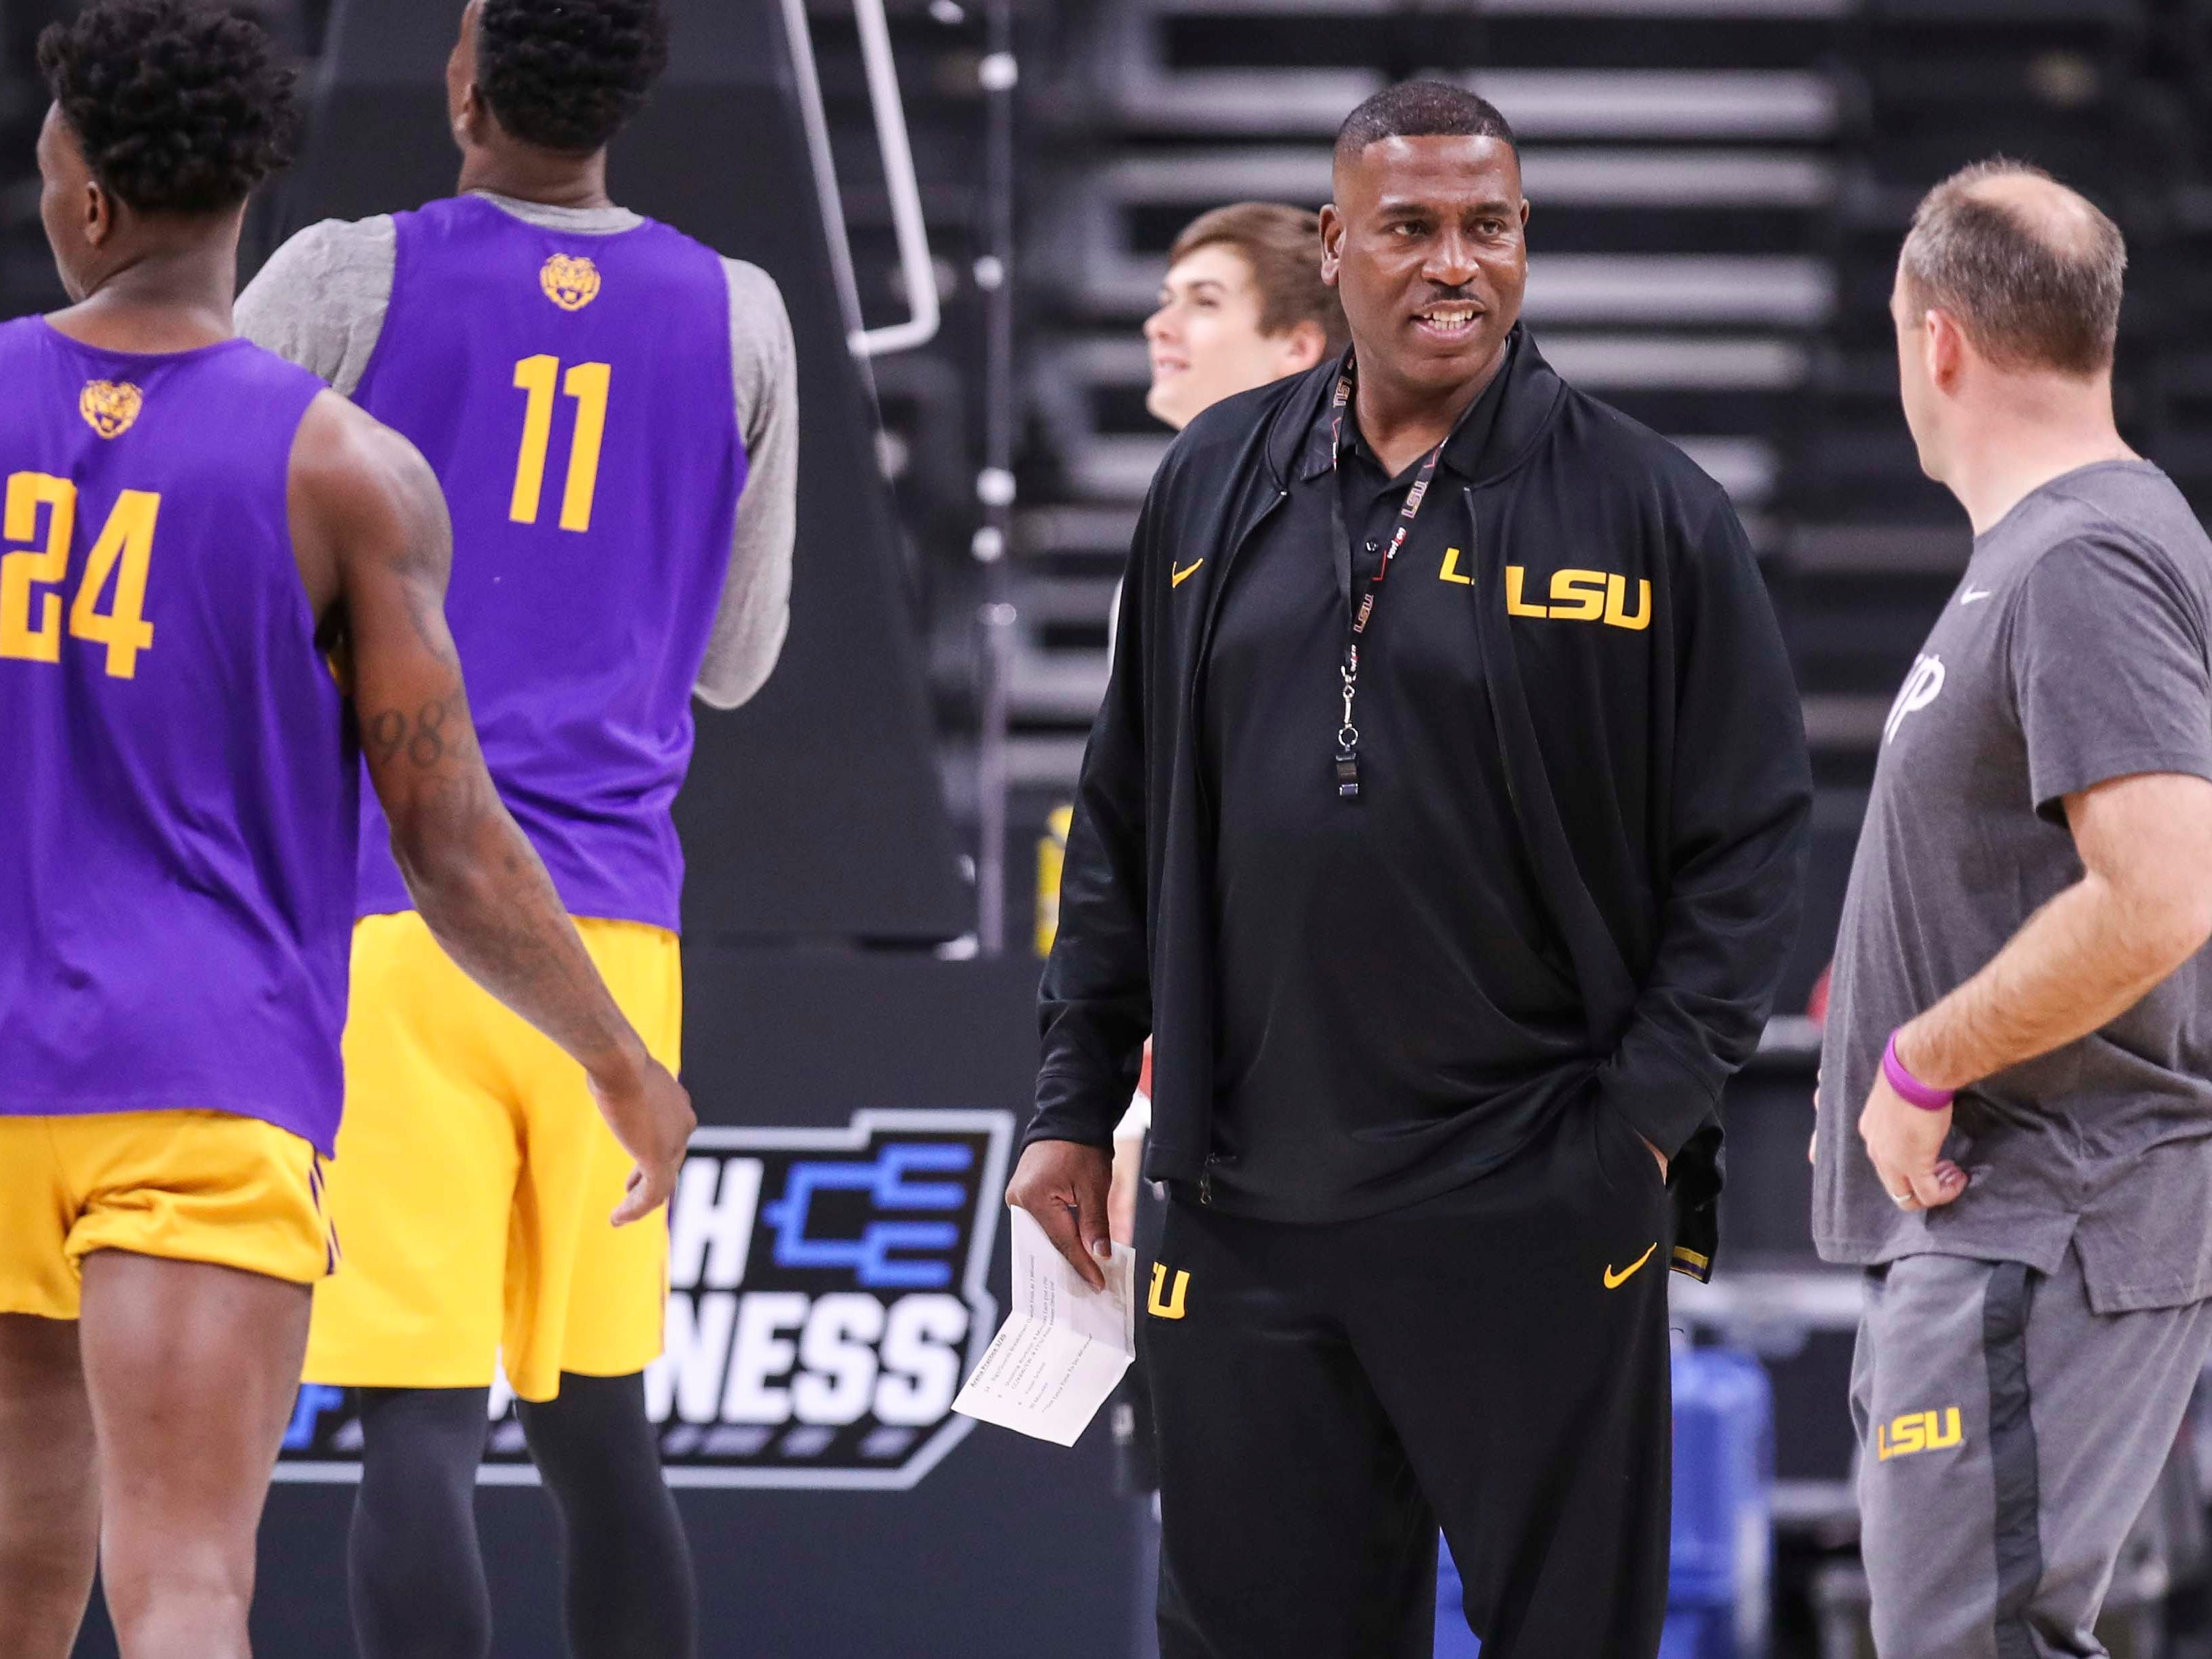 LSU takes on March Madness without Will Wade and again facing doubts